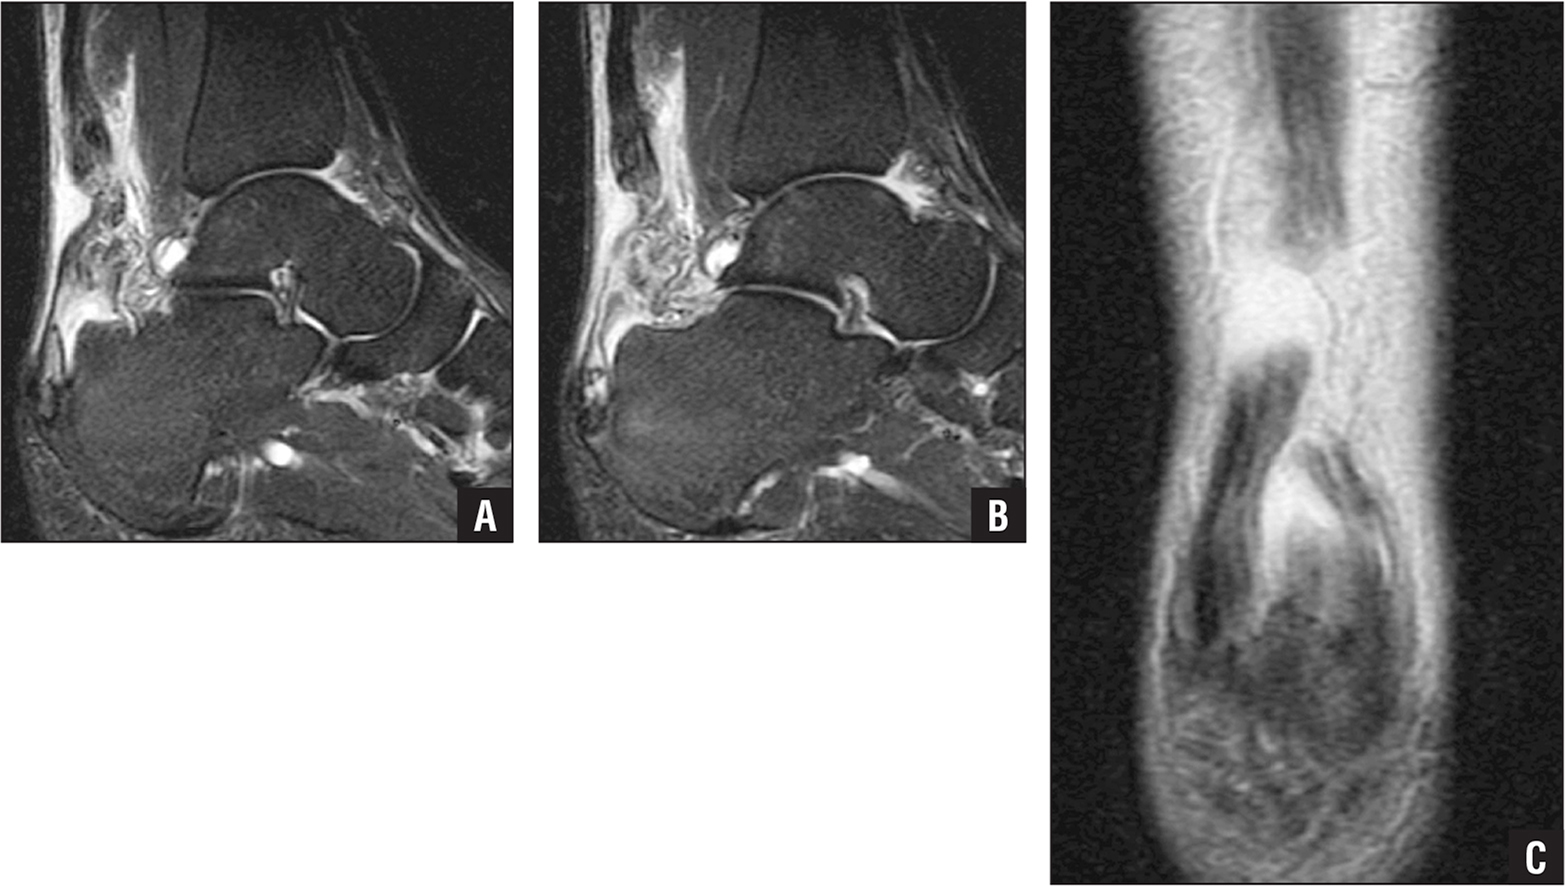 Sagittal magnetic resonance imaging cut at the midportion of the Achilles tendon showing a complex longitudinal oblique tear that originated distally, avulsed a piece of posterior bone, and propagated proximally into a complete tear. There are multiple areas of midsubstance and insertional Achilles disruption with surrounding edema (A). Sequential sagittal magnetic resonance imaging cut just lateral to midline showing lack of tendon continuity to the Achilles insertion (B). Coronal magnetic resonance imaging cut showing a complex Achilles rupture with combined midsubstance and insertional components (C).